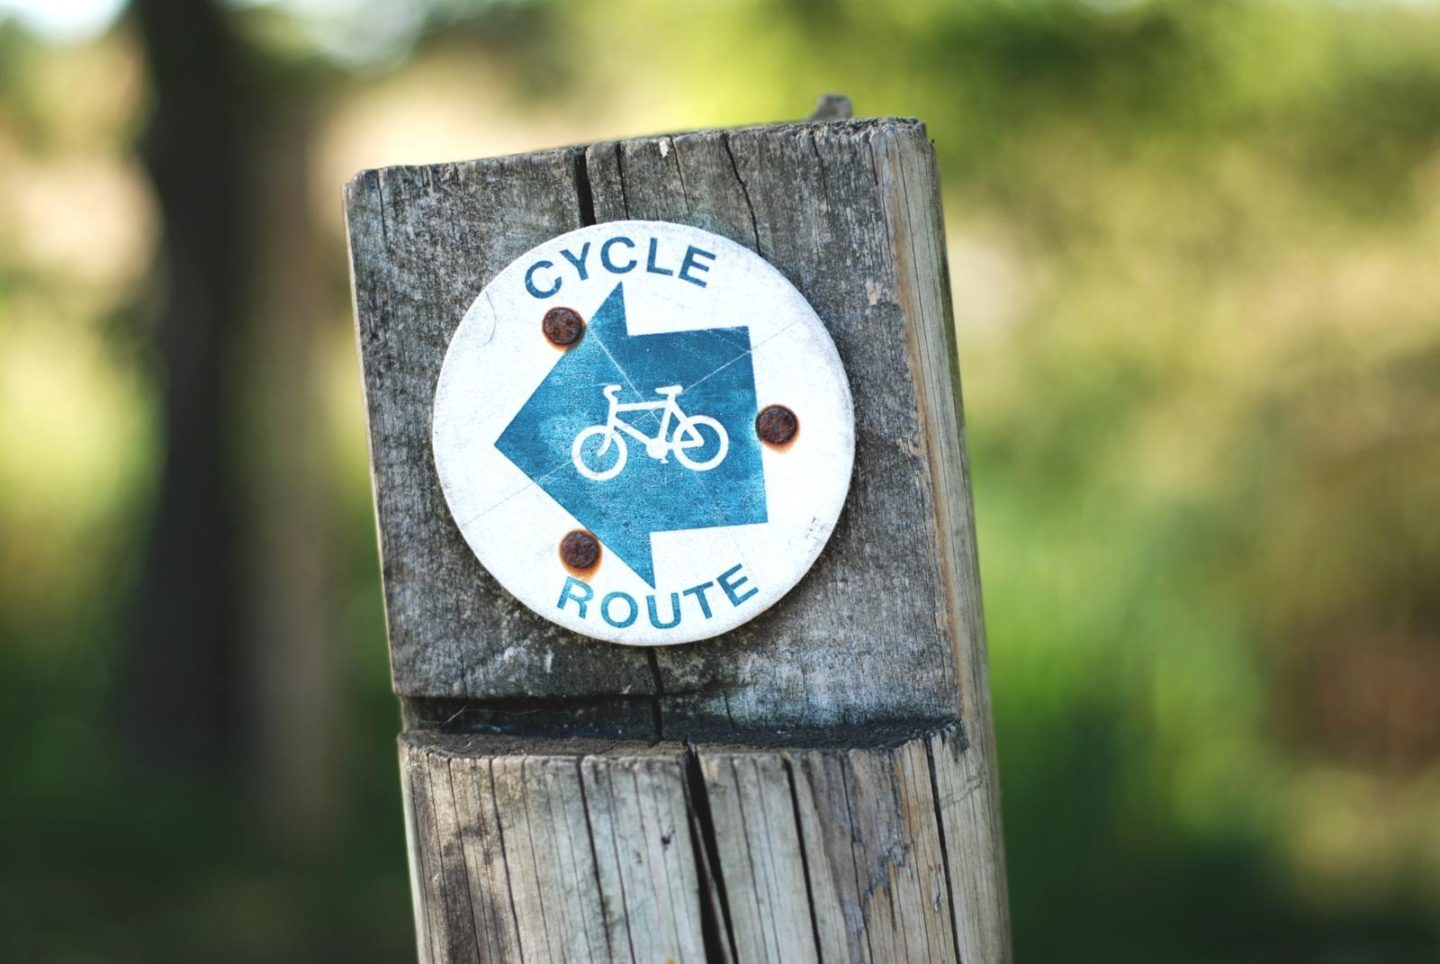 cycle route sign arrow on post